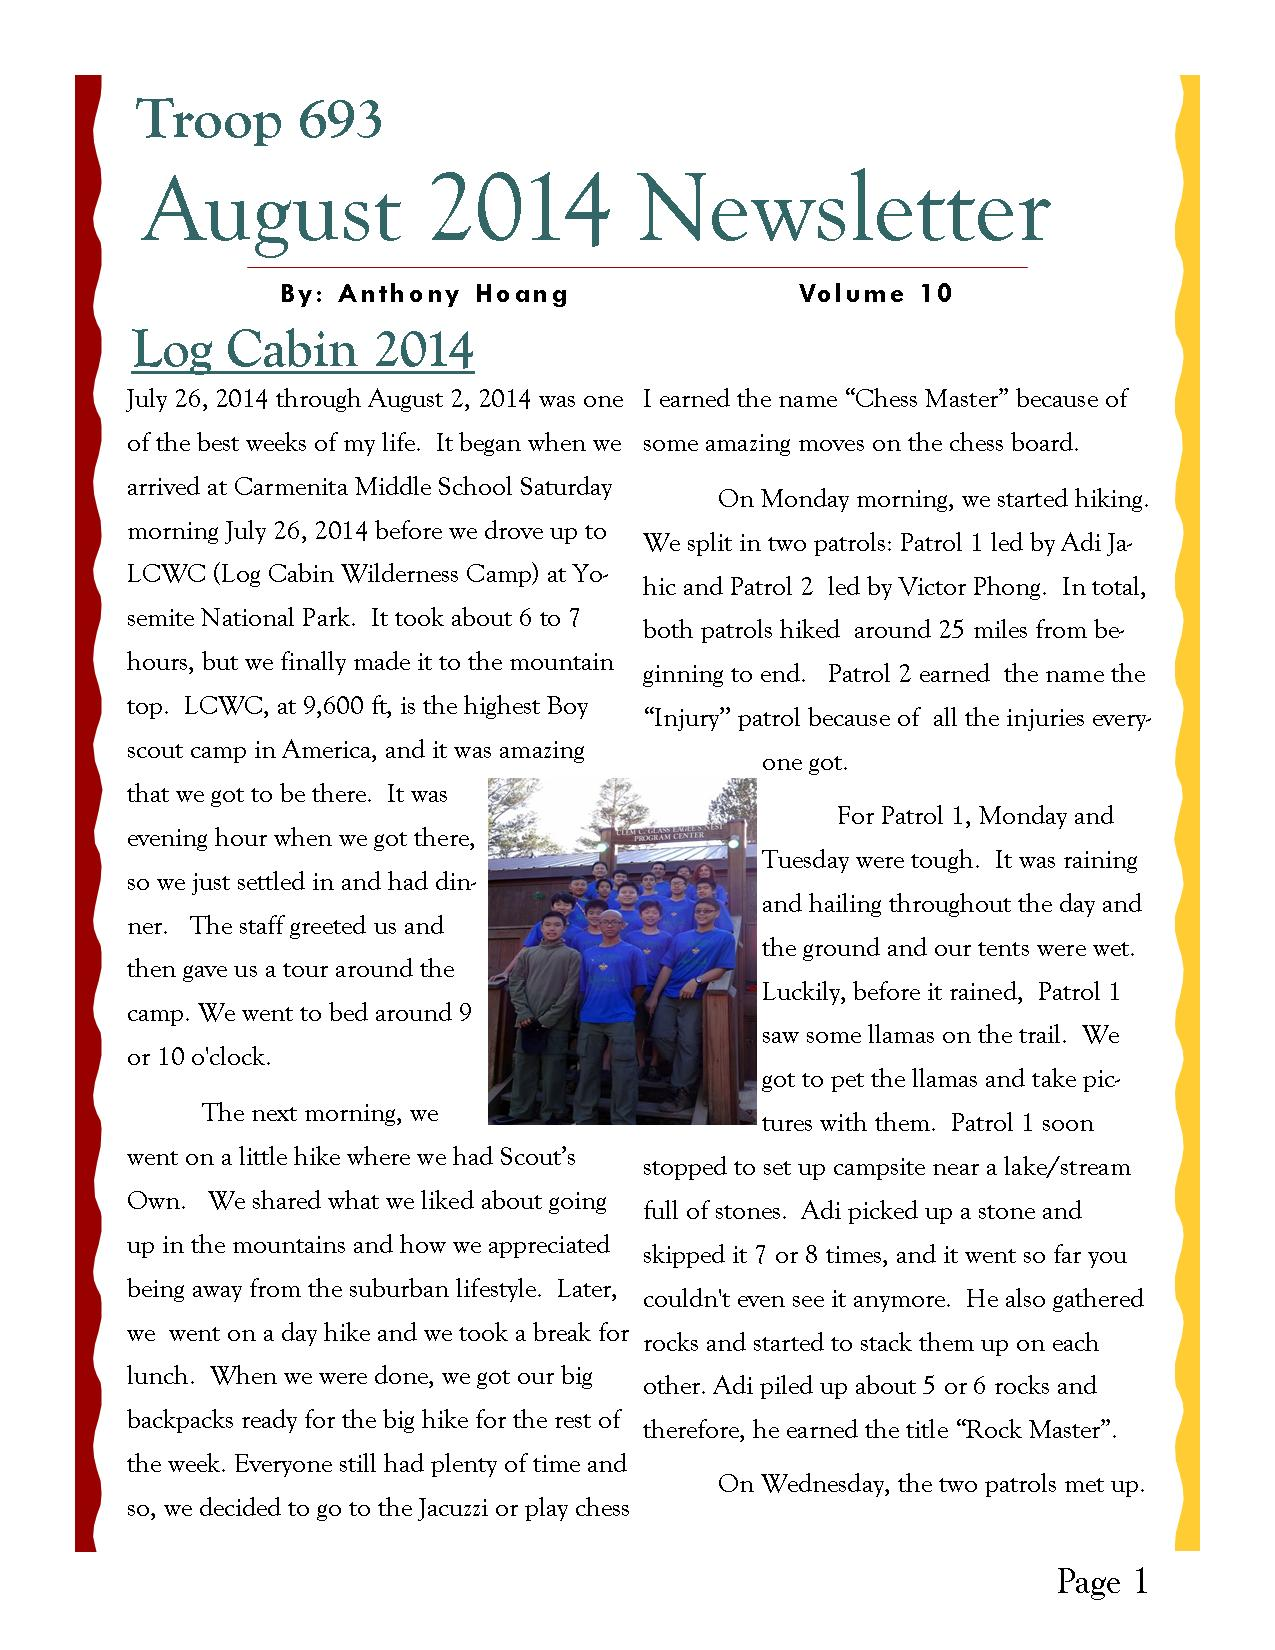 newsletter_2014aug1.jpg